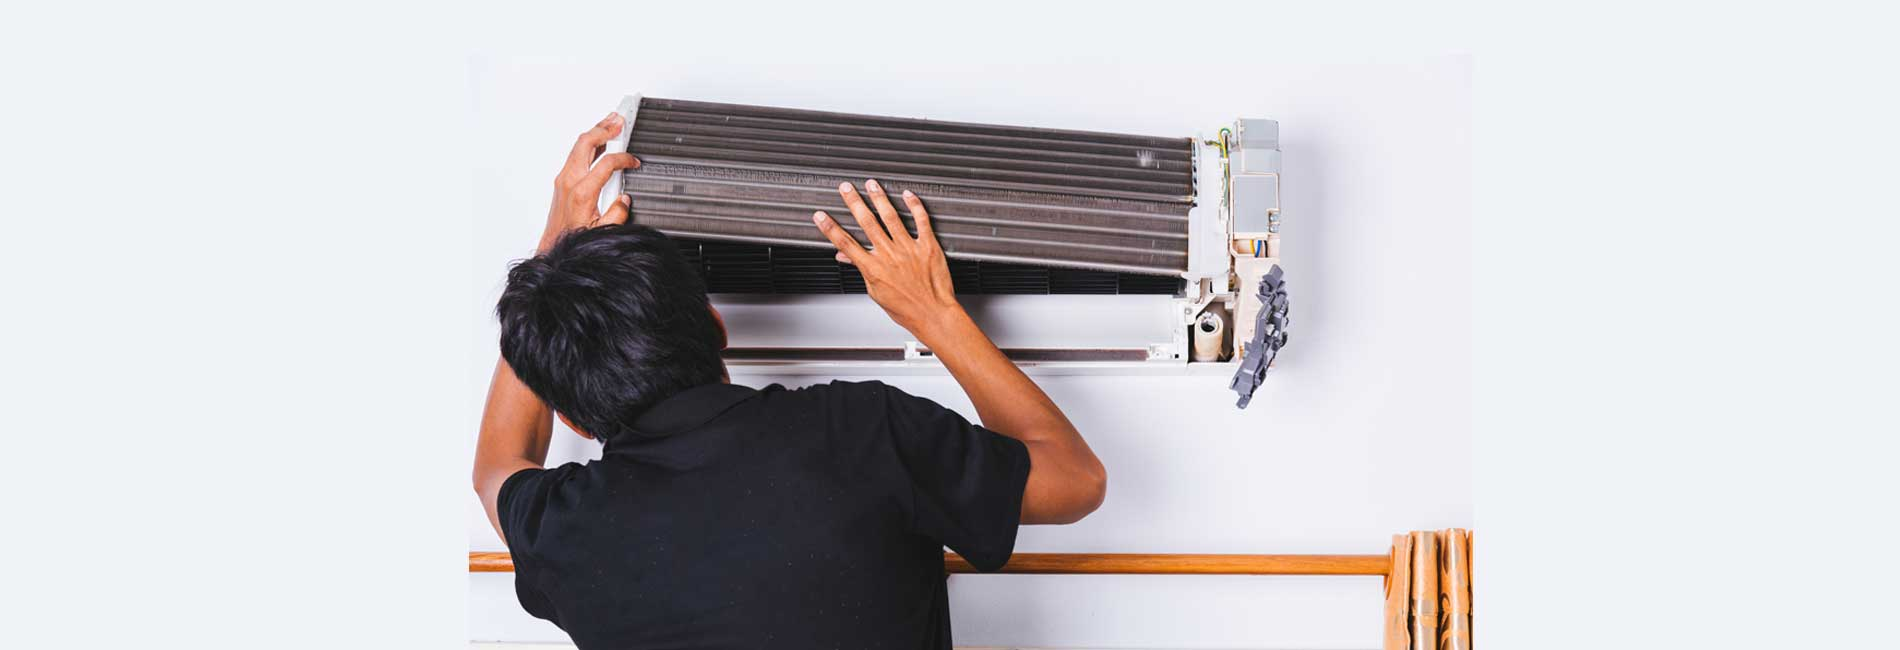 Split AC Uninstallation in Pattaravakkam